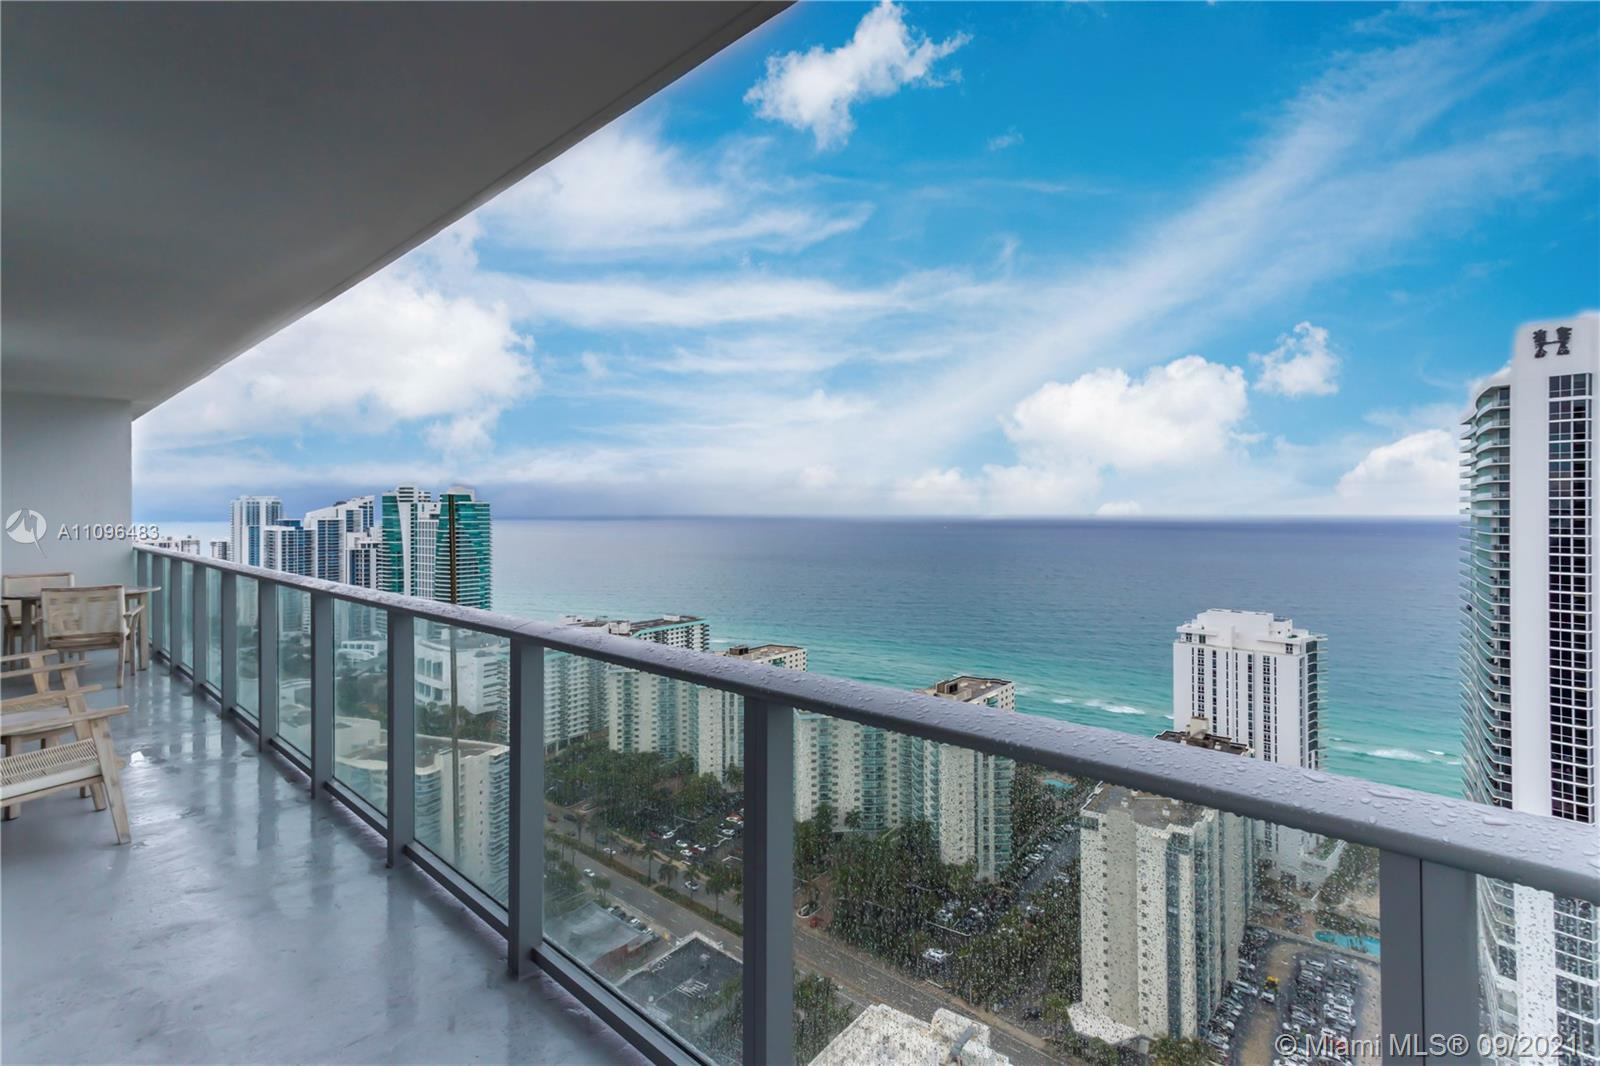 GREAT INCOME PRODUCING! Live or invest in this brand new luxury high-rise unit at Hyde Beach House.